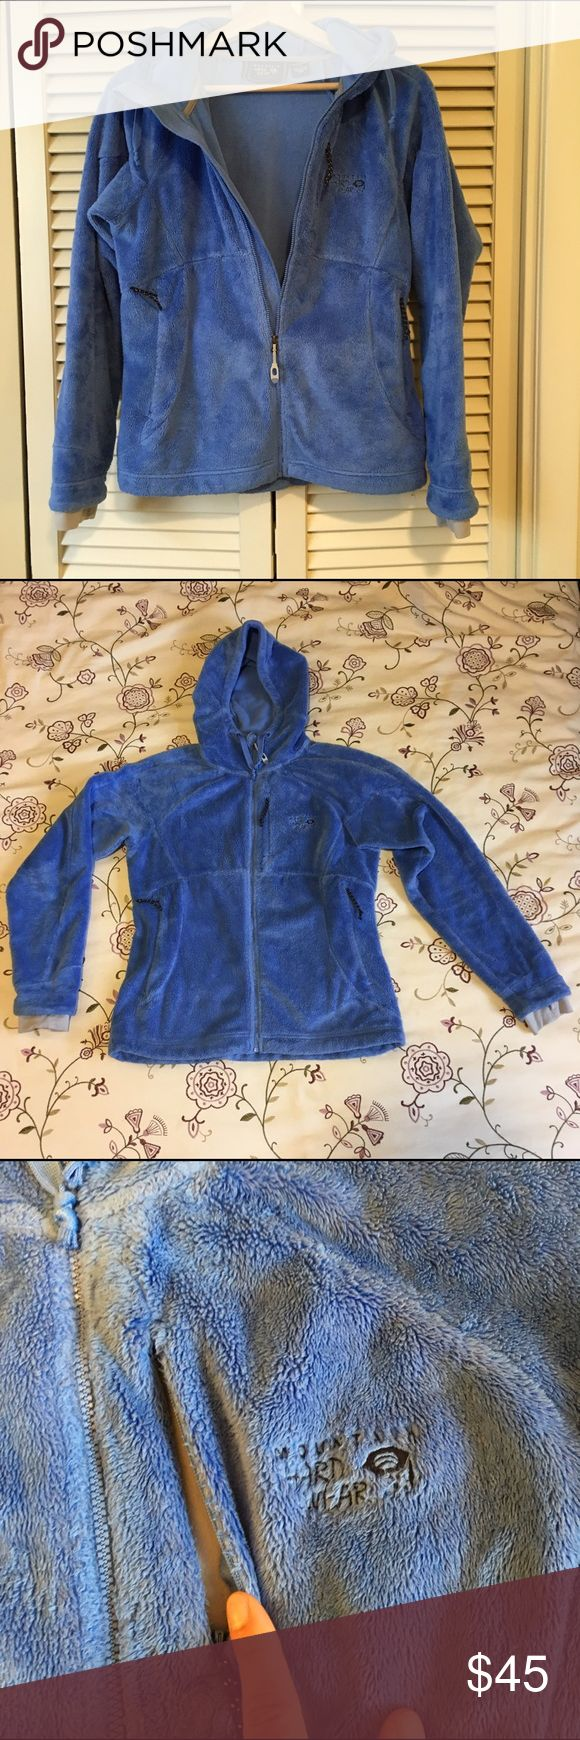 Mountain Hardwear monkey jacket Has been used but good condition! Fleece lined. Make an offer or buy on Mercari for less! Mountain Hard Wear Jackets & Coats